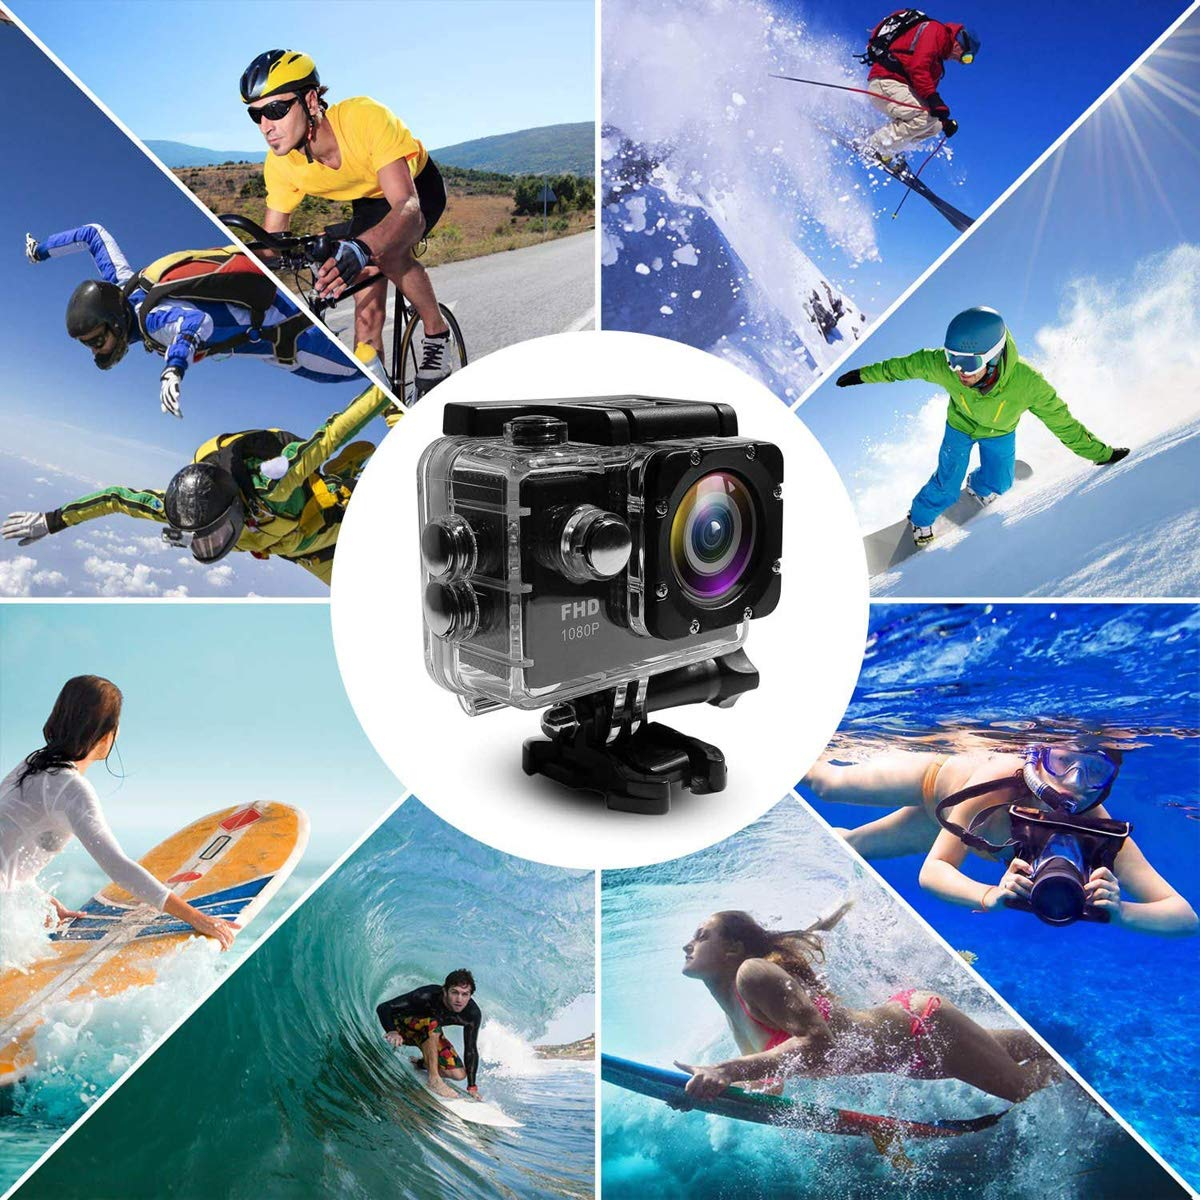 Nesolo Kids Digital Camera, Waterproof Camera for Kids Toy for Boy Girls Holiday Birthday Gift with 2.0 Inch LCD Display by Nesolo (Image #7)